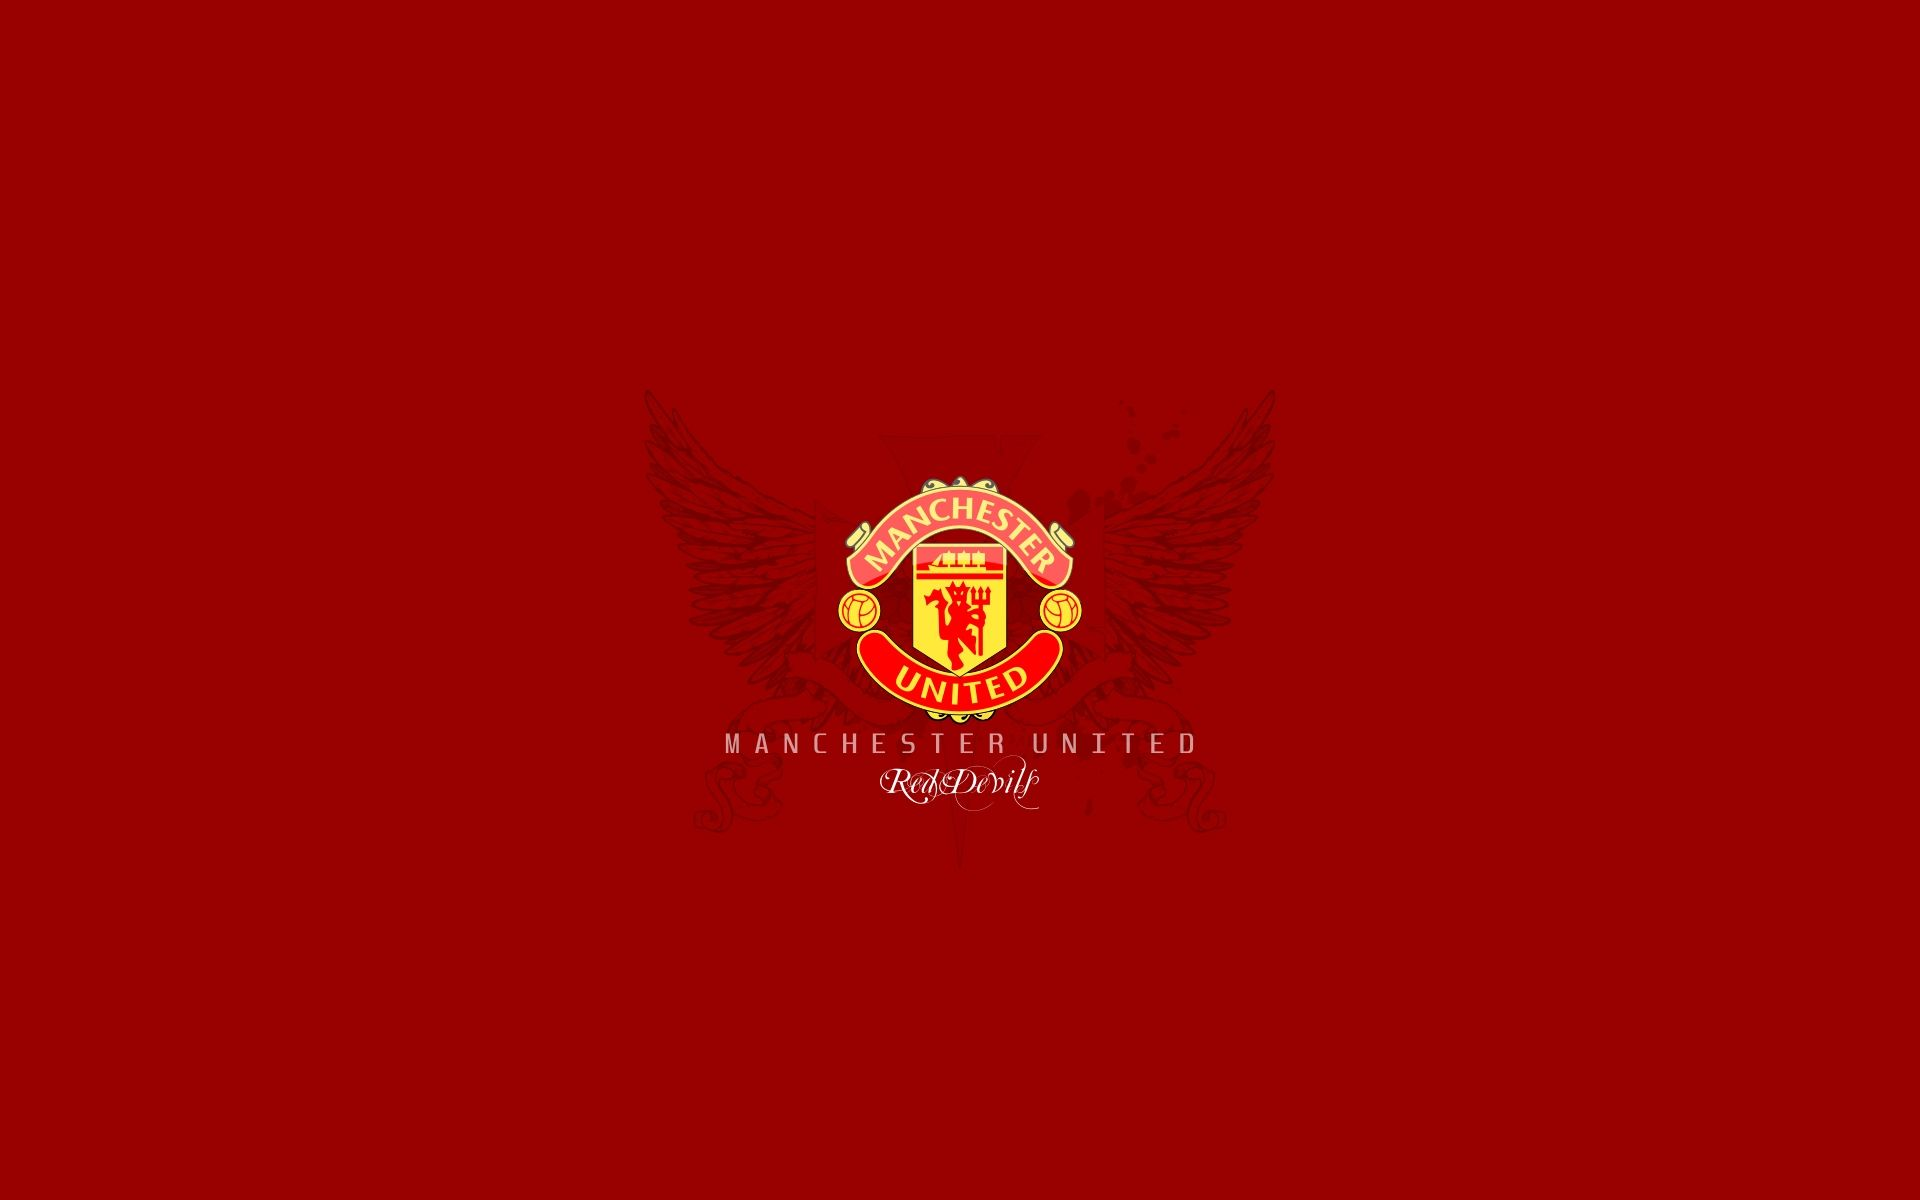 Manchester United Logo In High Quality Manchester United Logo Manchester United Manchester